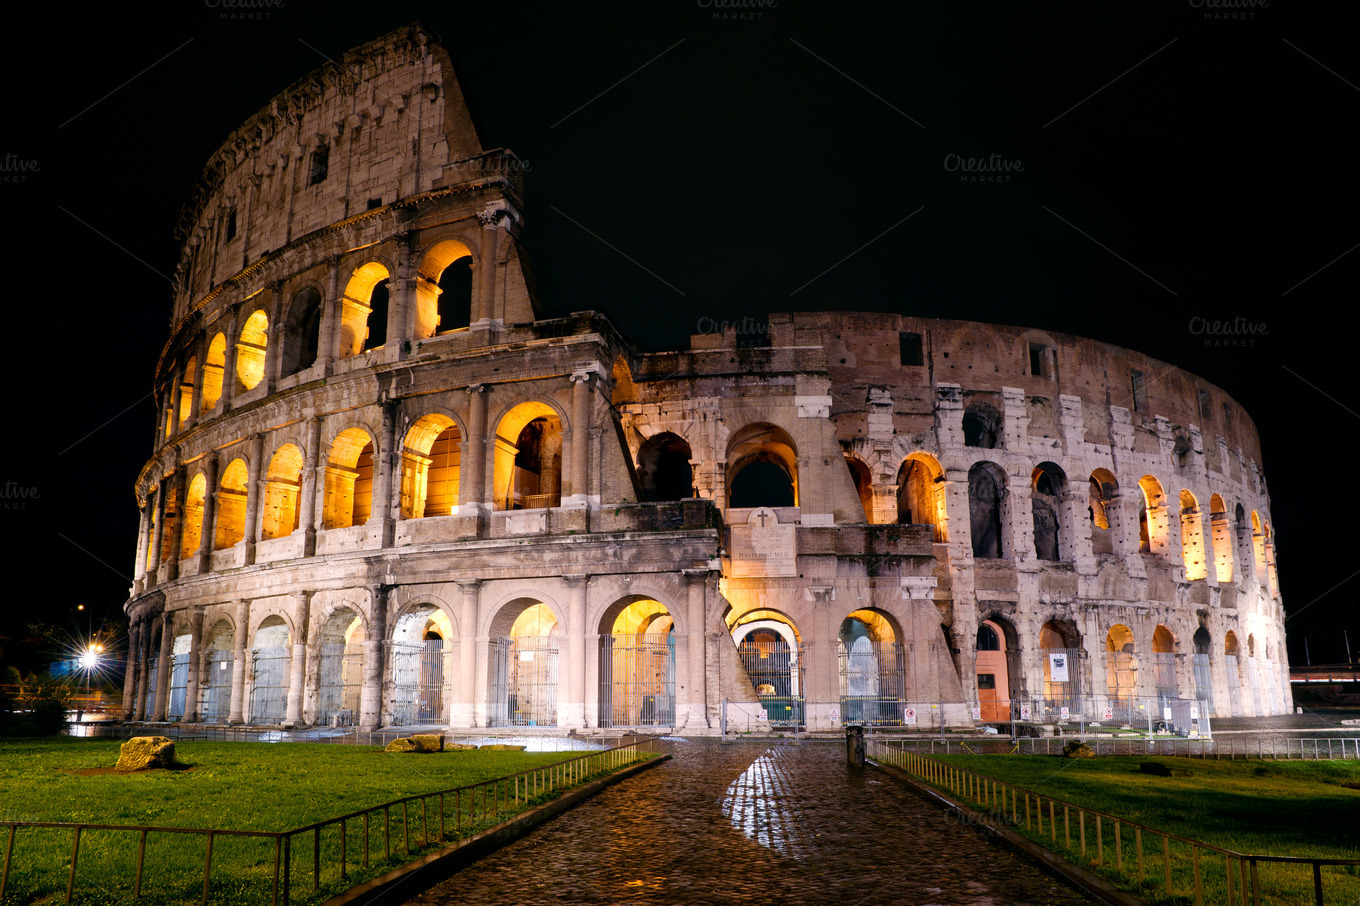 Colosseum at night, Rome ~ Architecture Photos on Creative ...